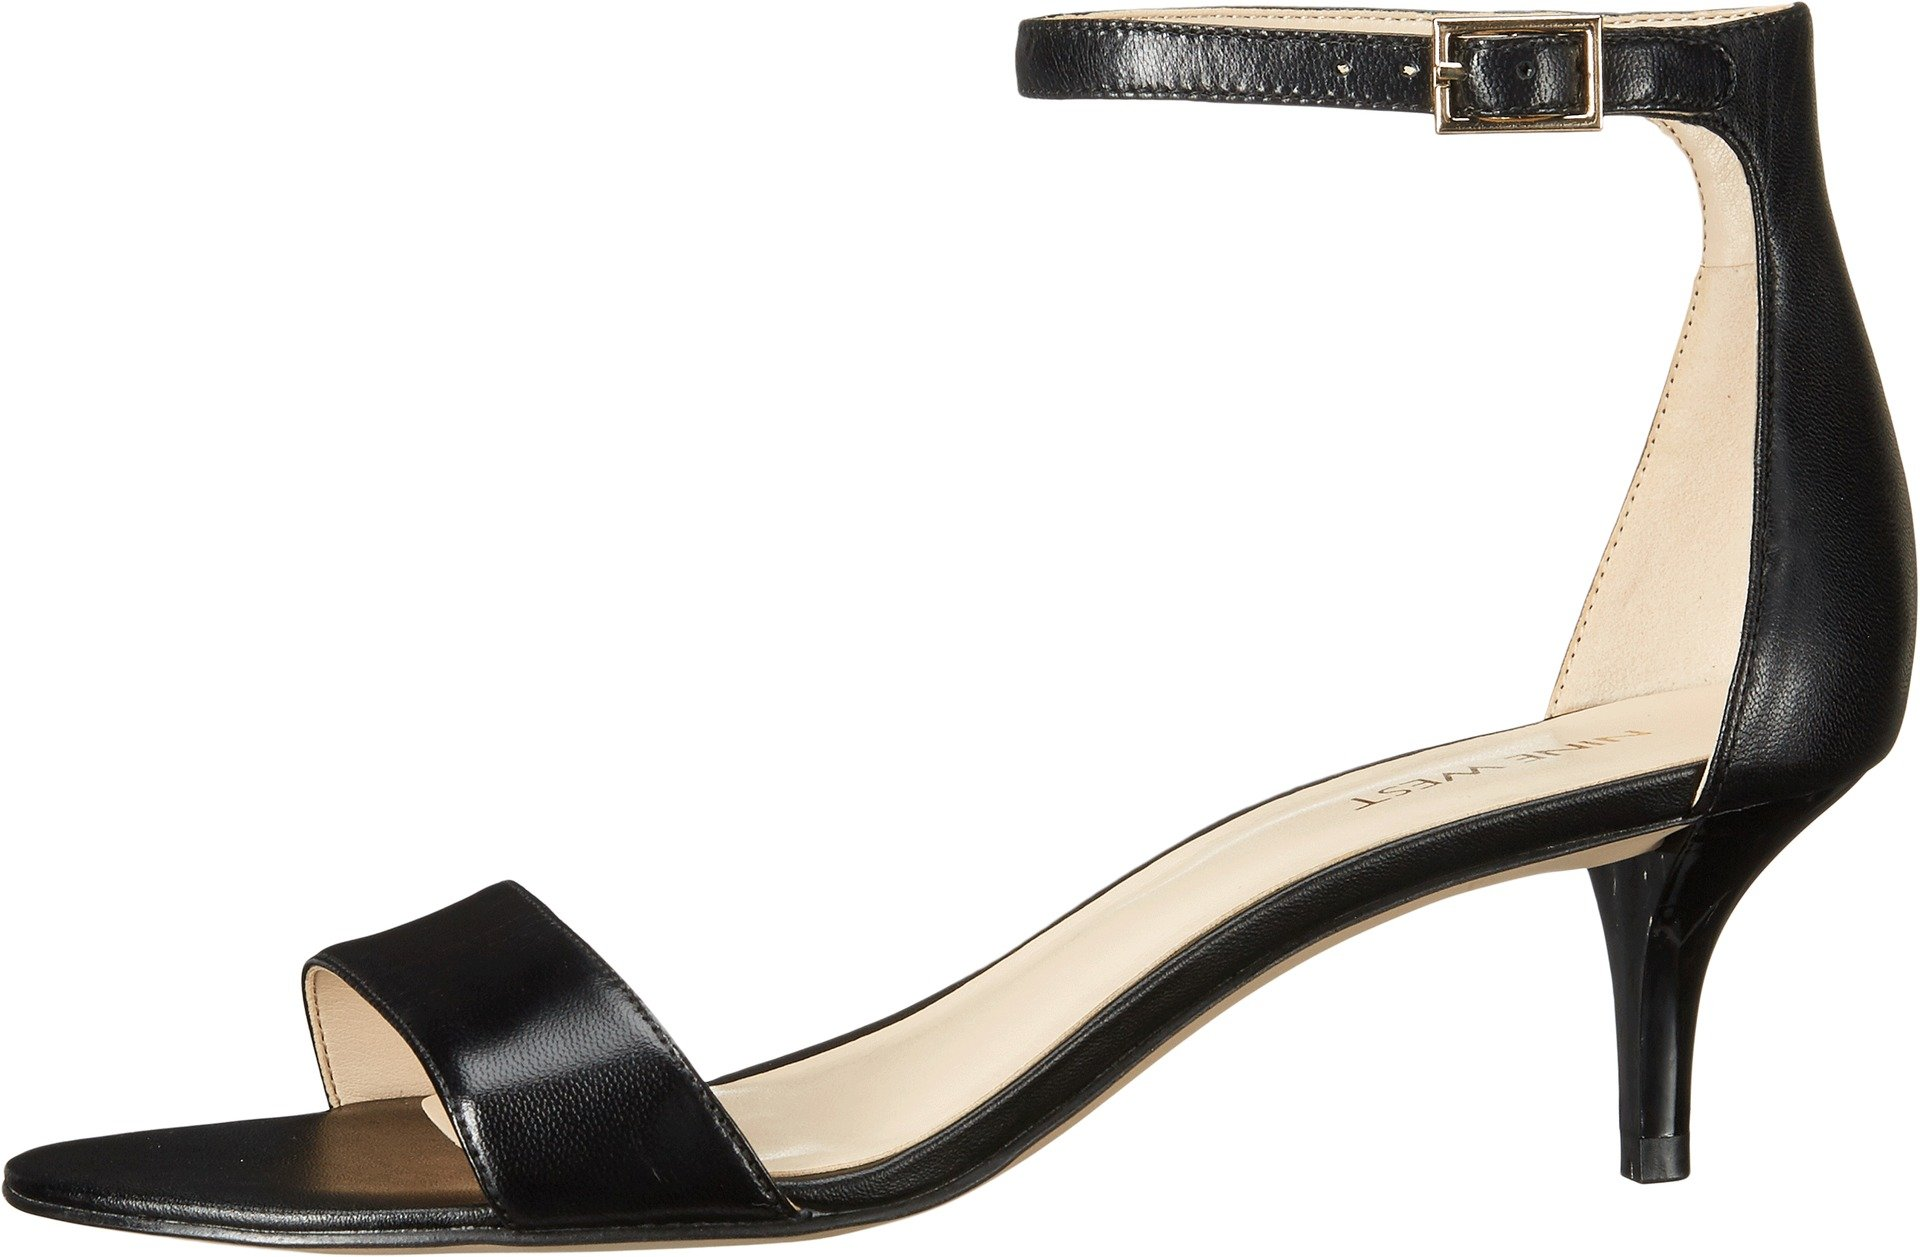 Nine West Women's Leisa Leather Heeled Dress Sandal, Black Leather, 7.5 M US by Nine West (Image #2)